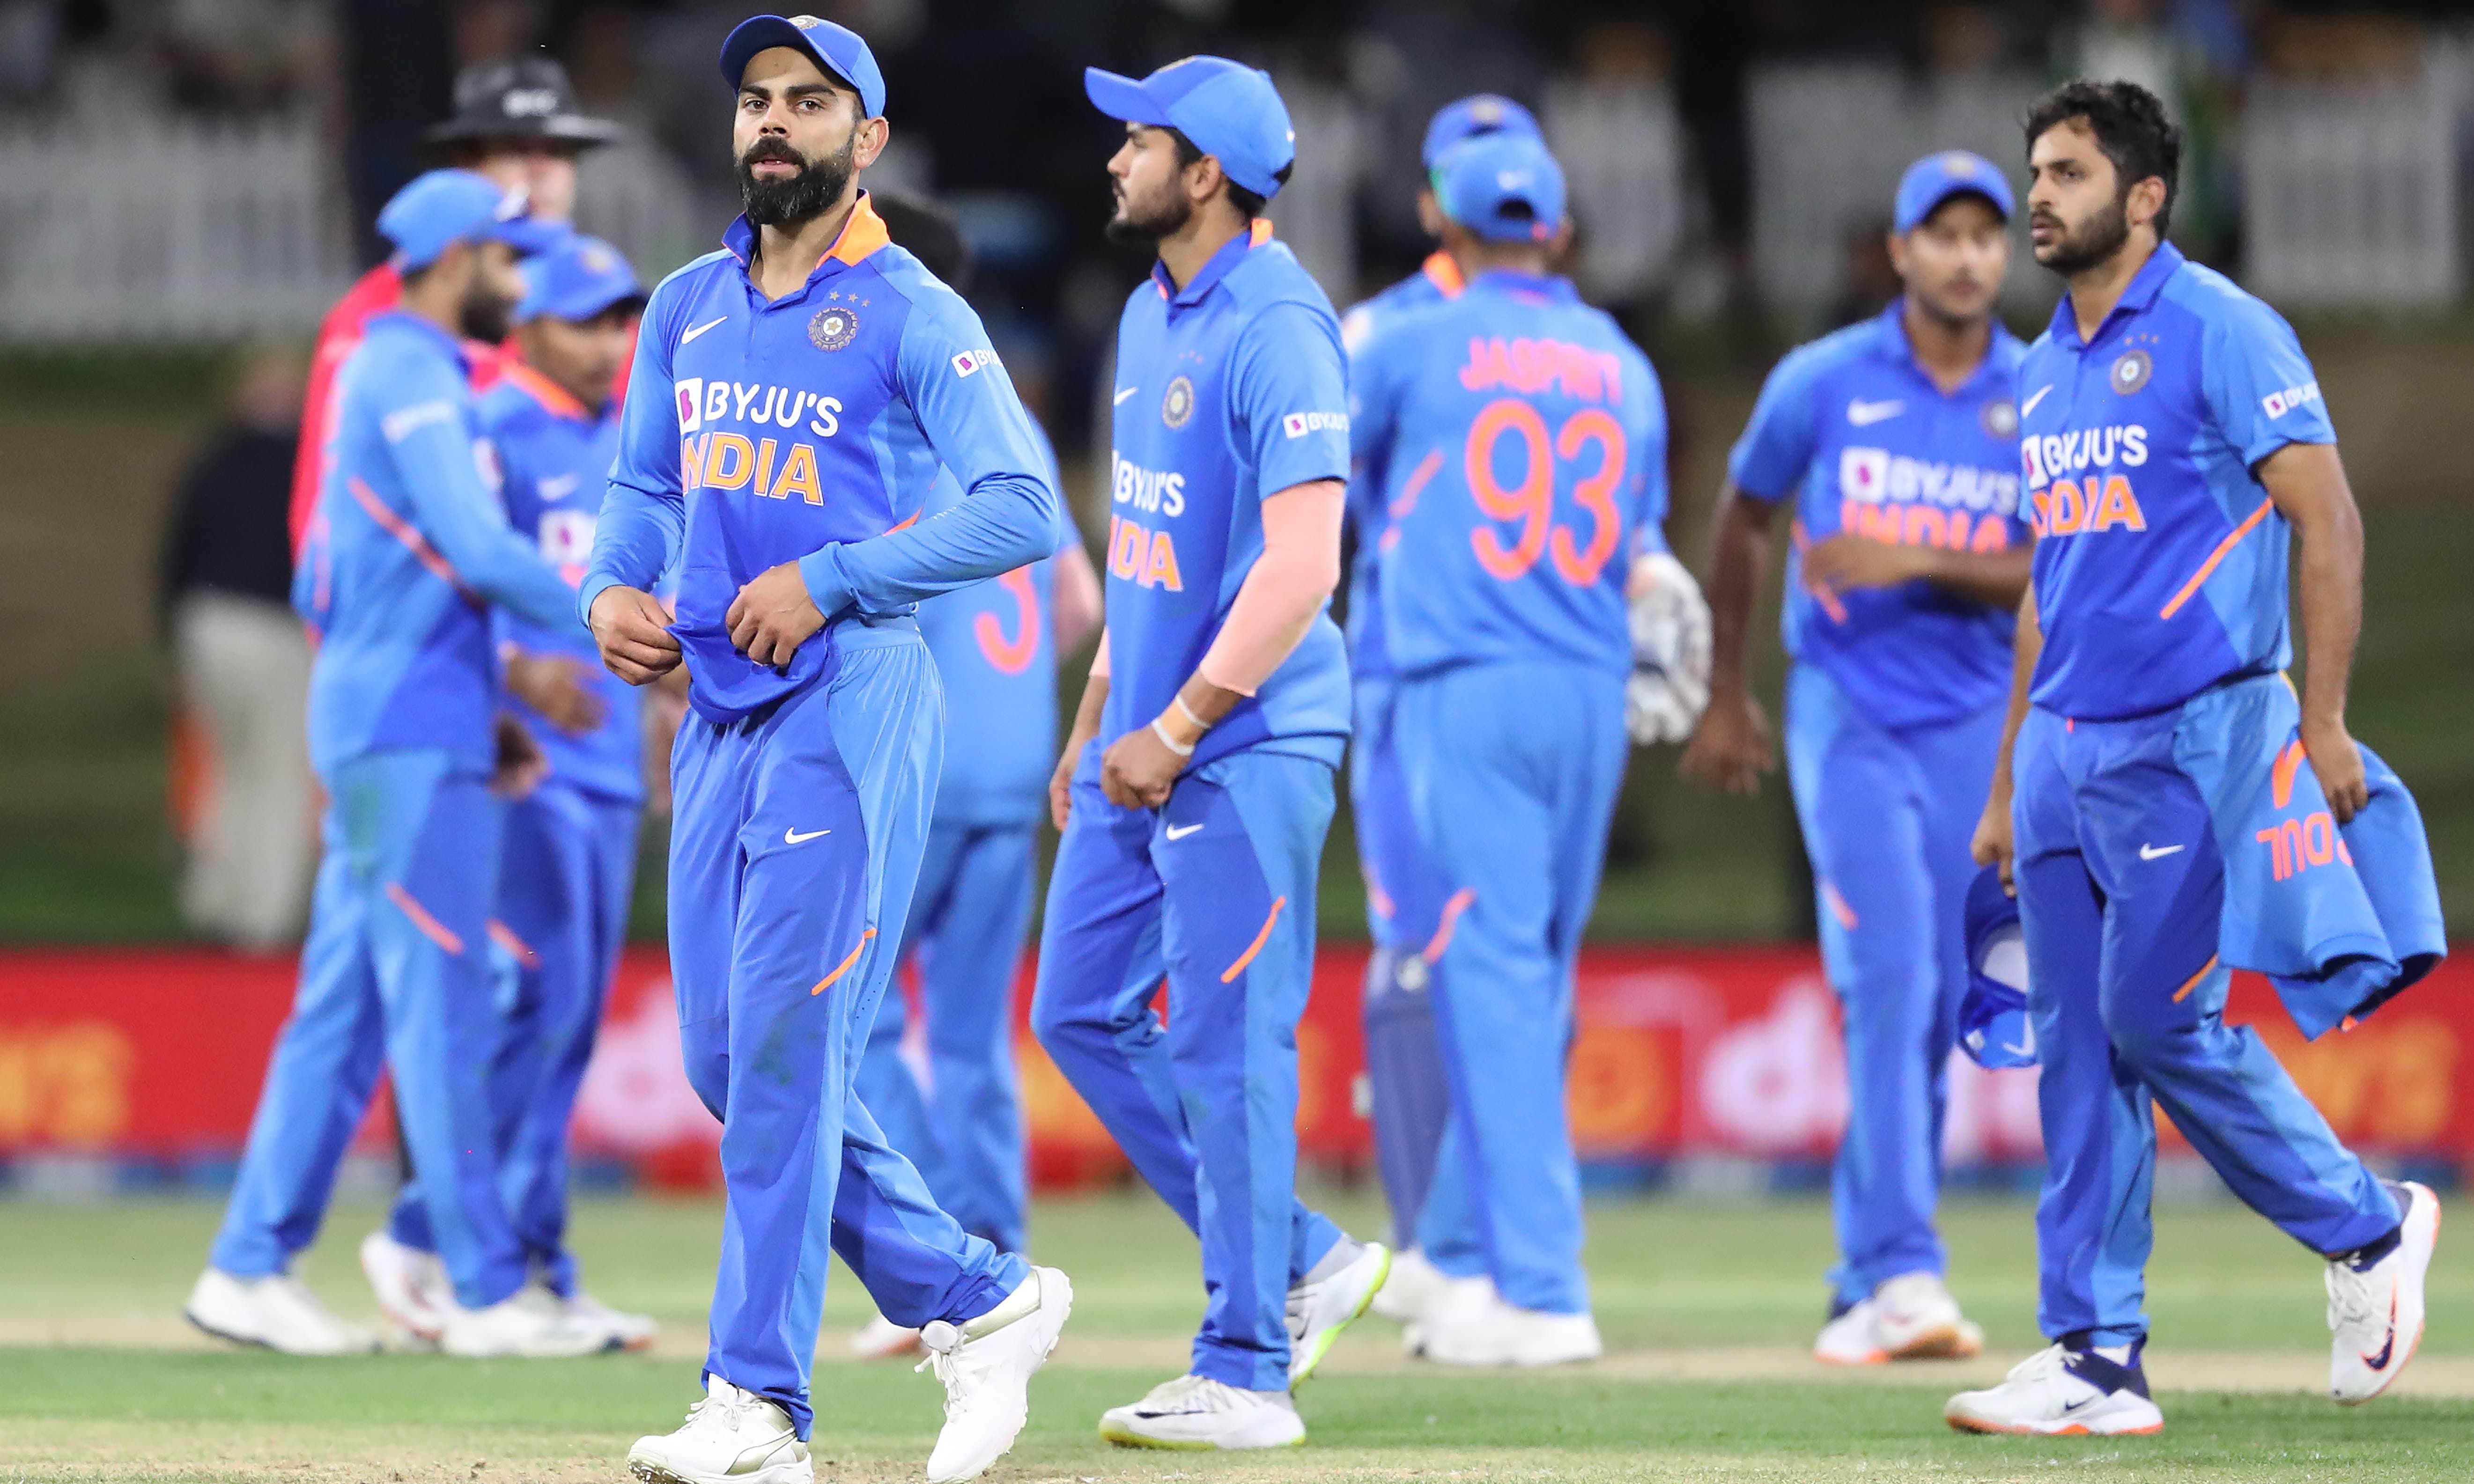 India's Virat Kohli walks with his players off the field after defeat during the third one-day international cricket match between New Zealand and India at the Bay Oval in Mount Maunganui on Feby 11. — AFP